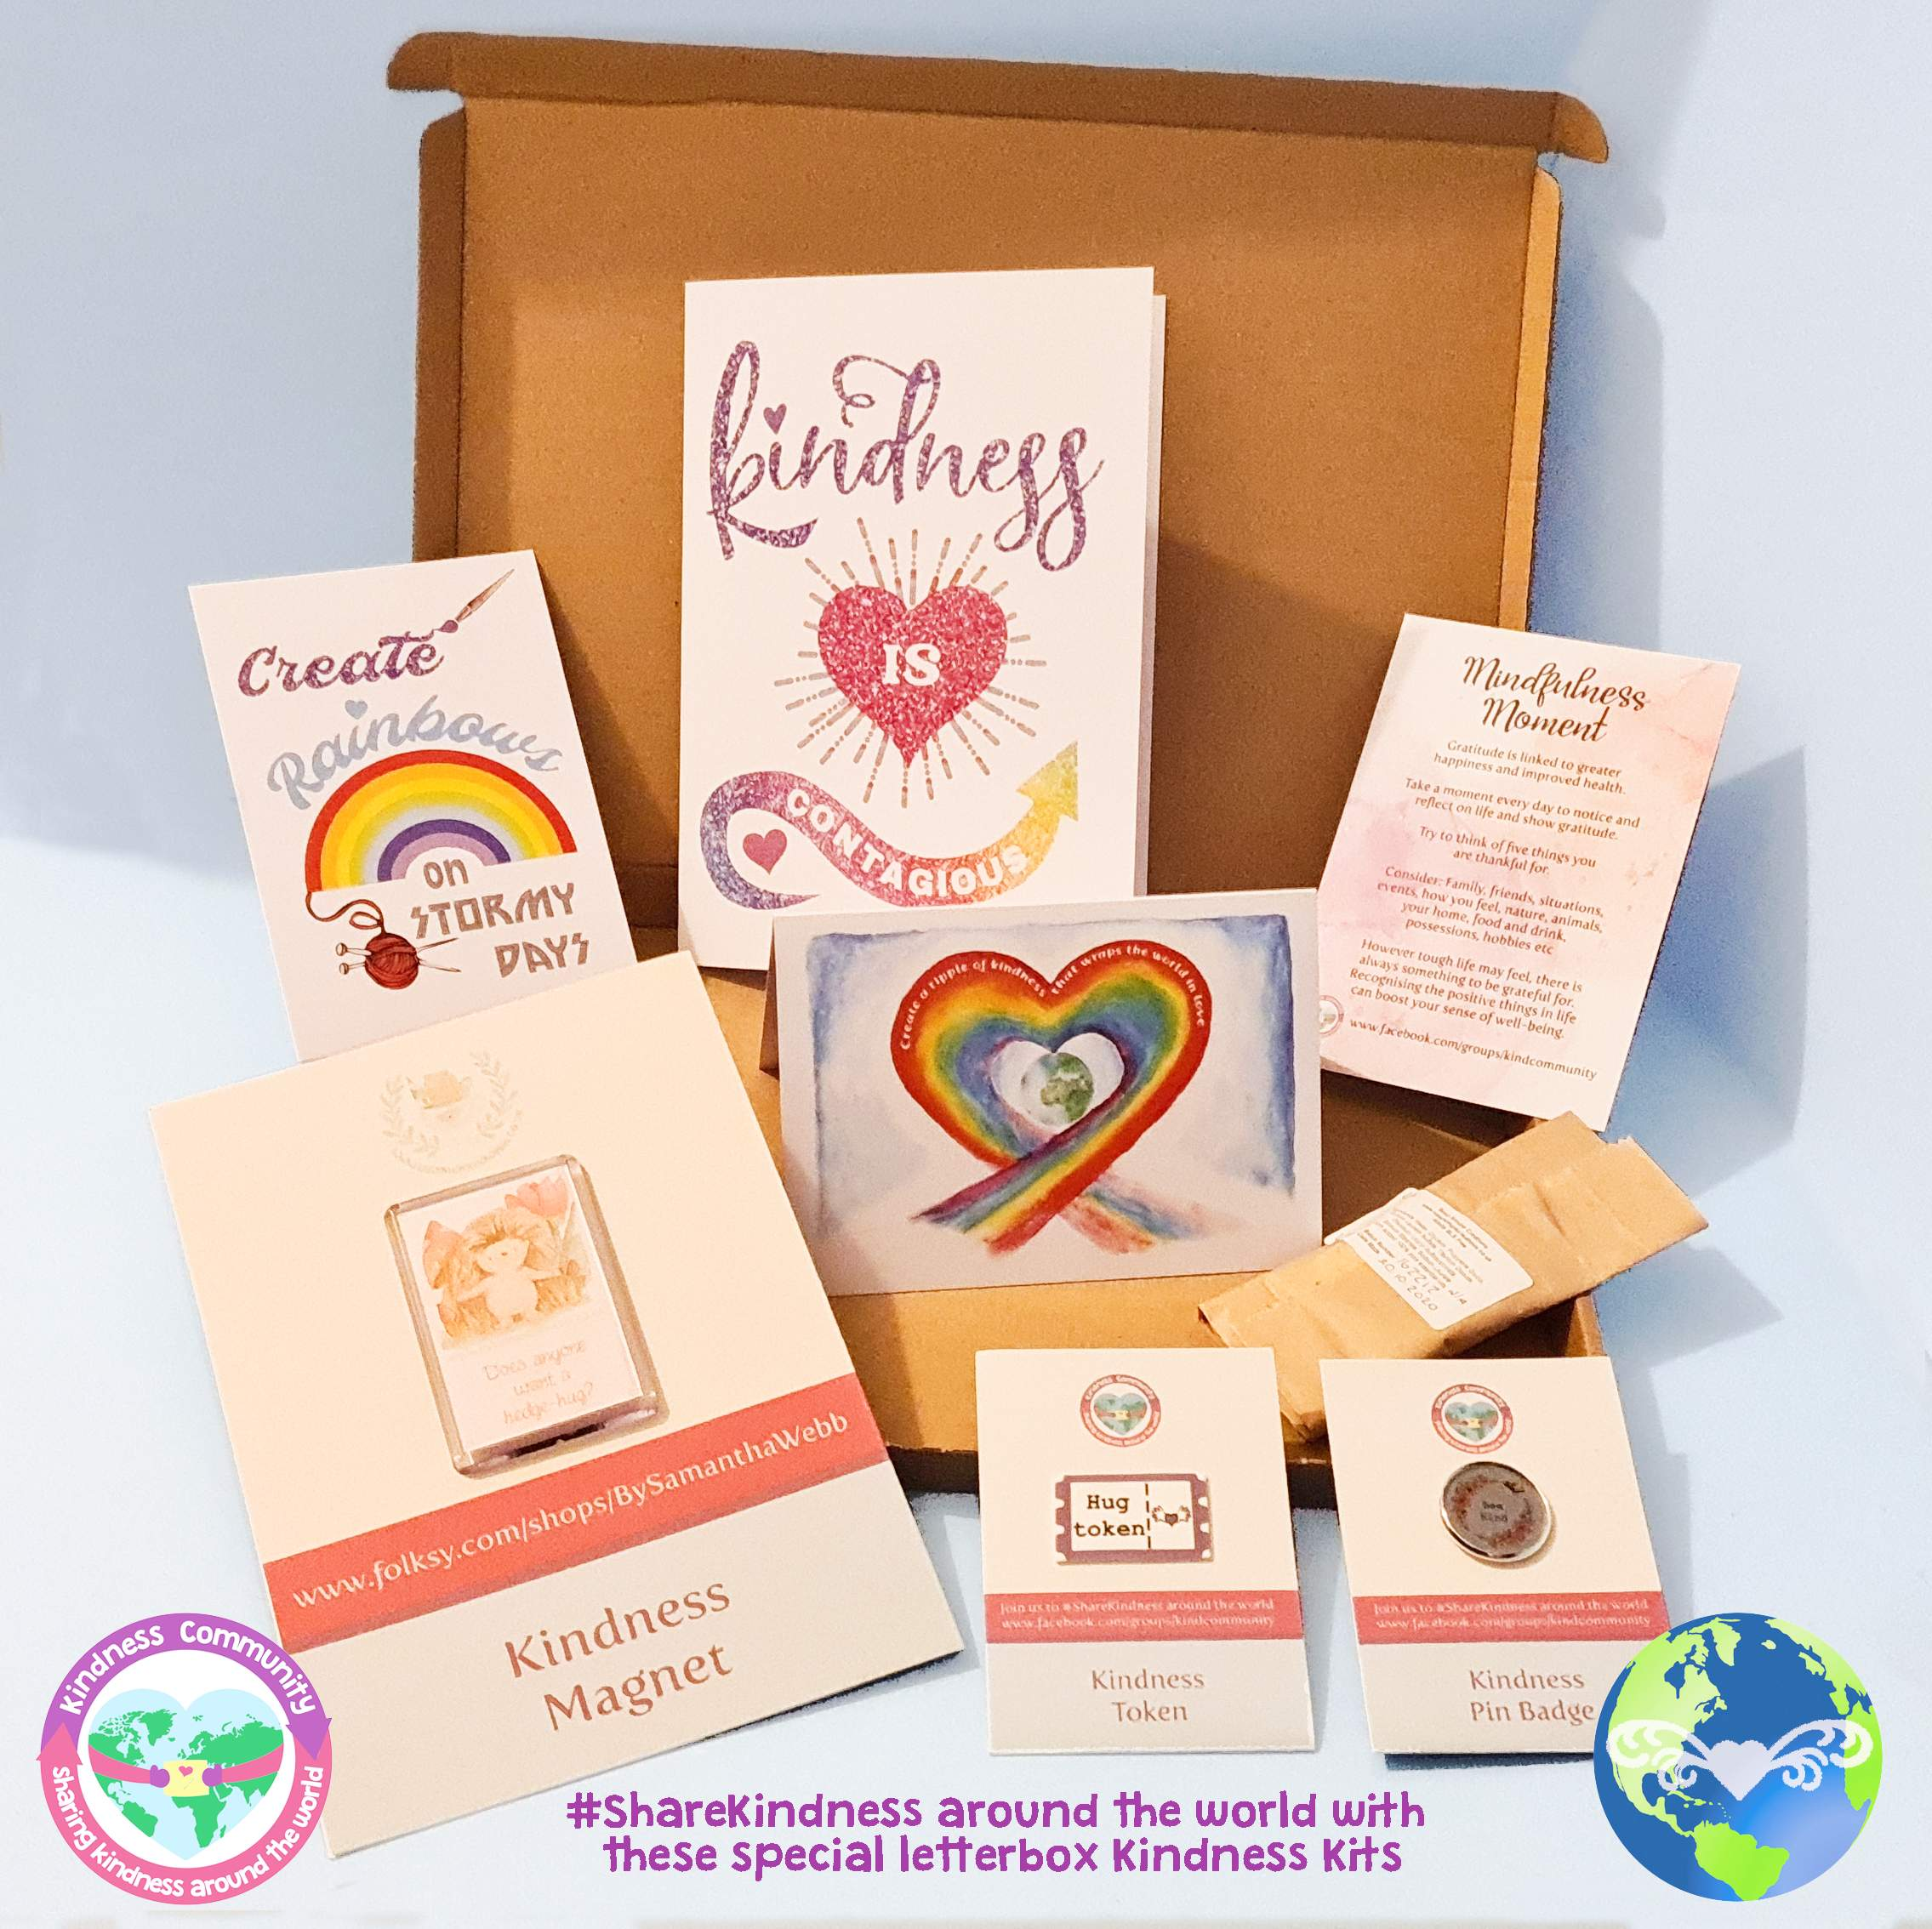 Kindness Kit Box 1 - Self Care Package Gift, Letterbox Friendly